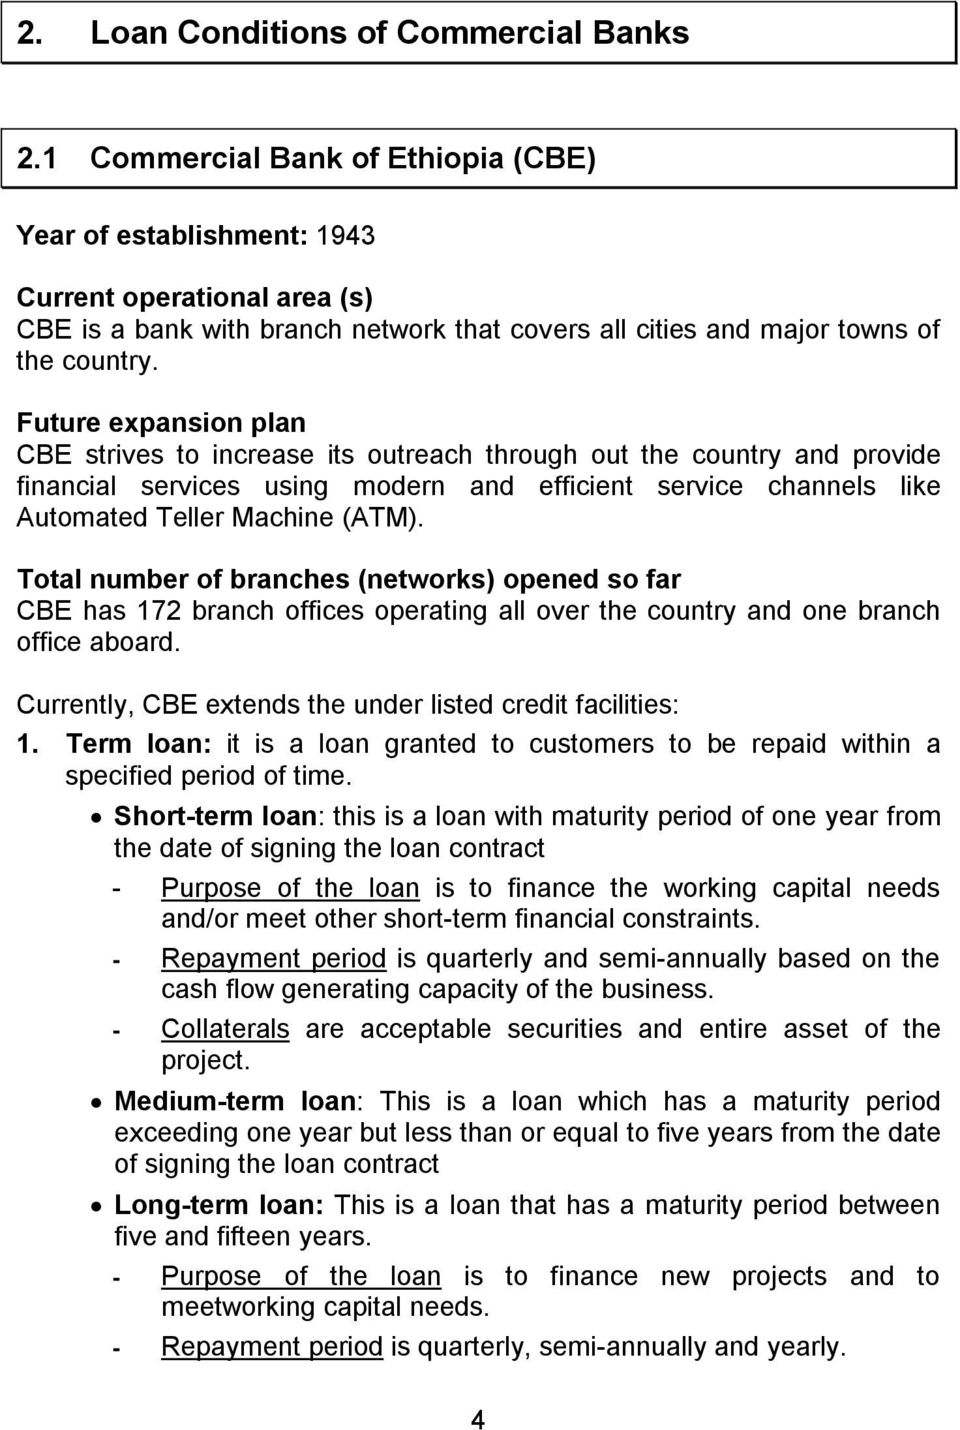 Conditions for obtaining credit in modern banking institutions